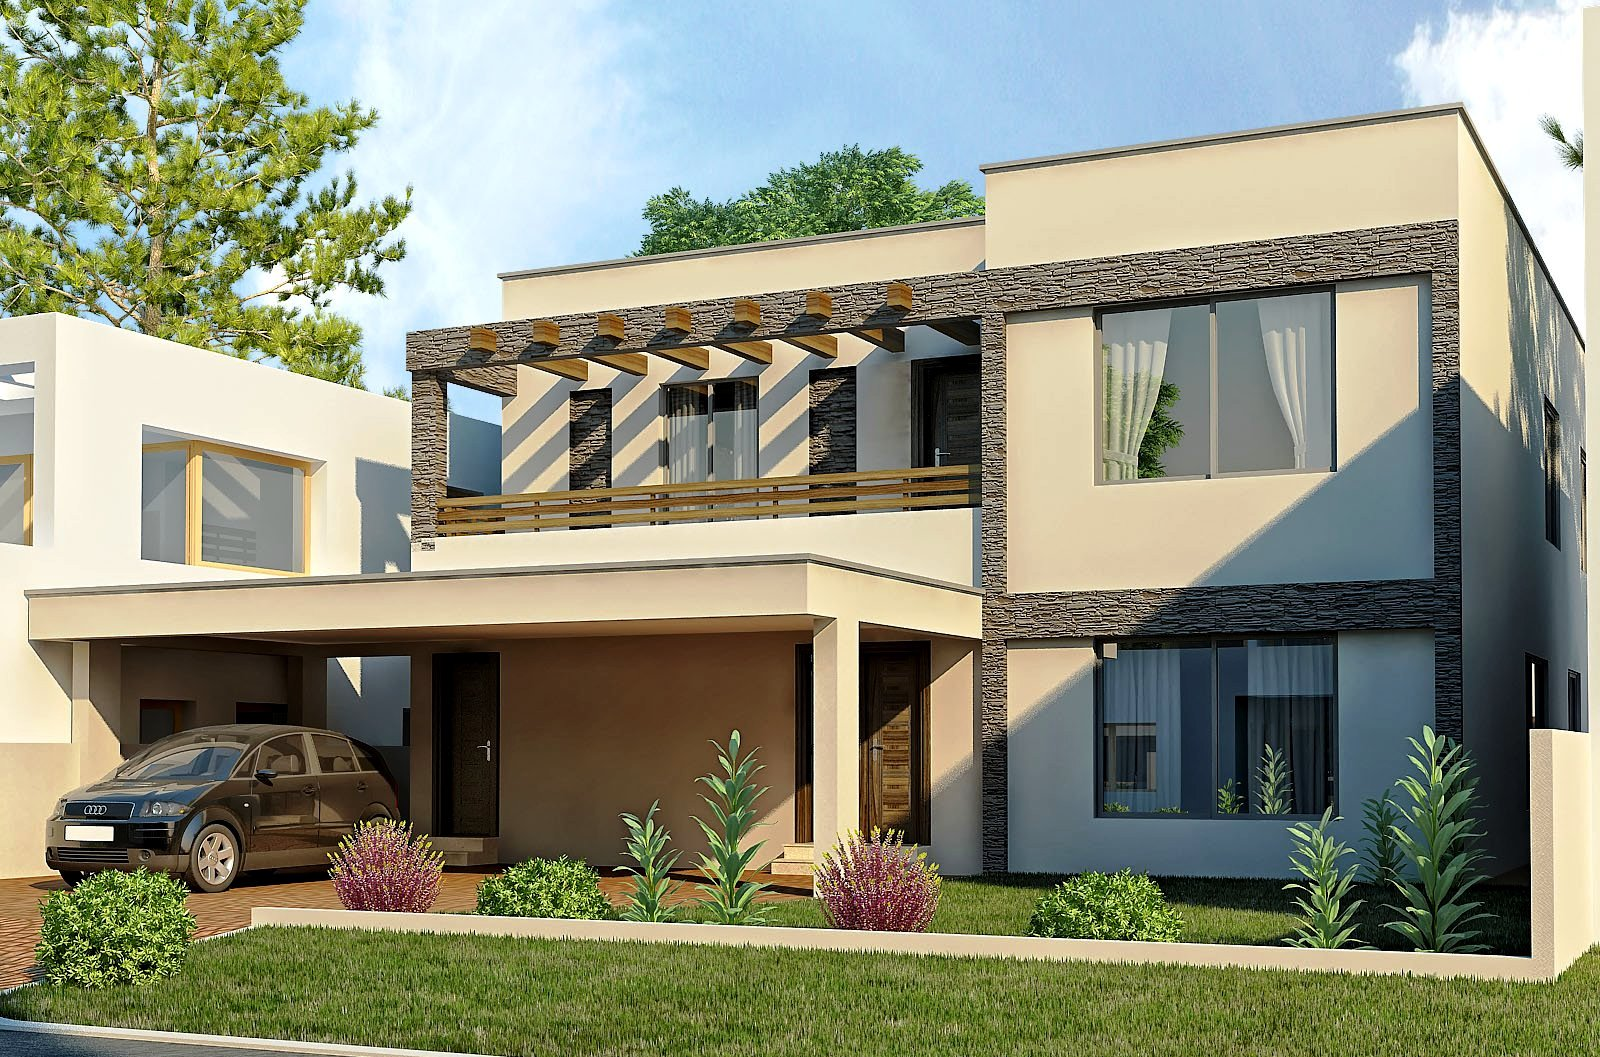 New home designs latest modern homes exterior designs views for Modern house front view design